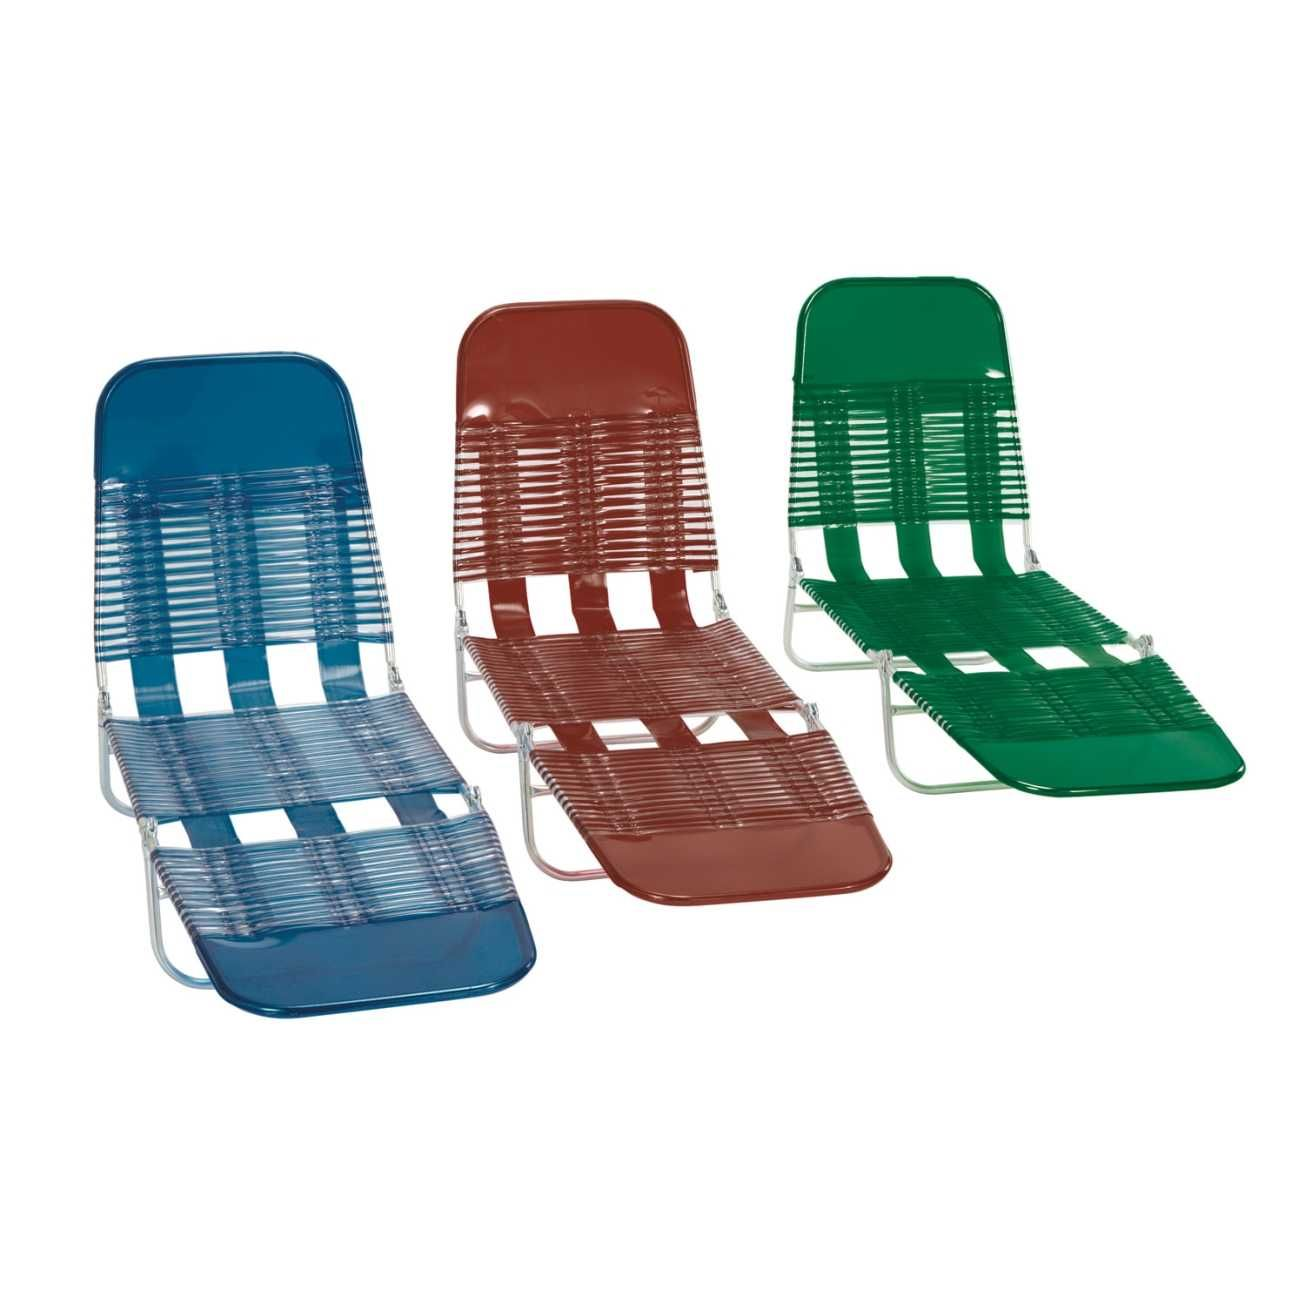 Plastic Lounge Chair Plastic Pool Lounge Chairs Loungers For Cape Town 2018 And